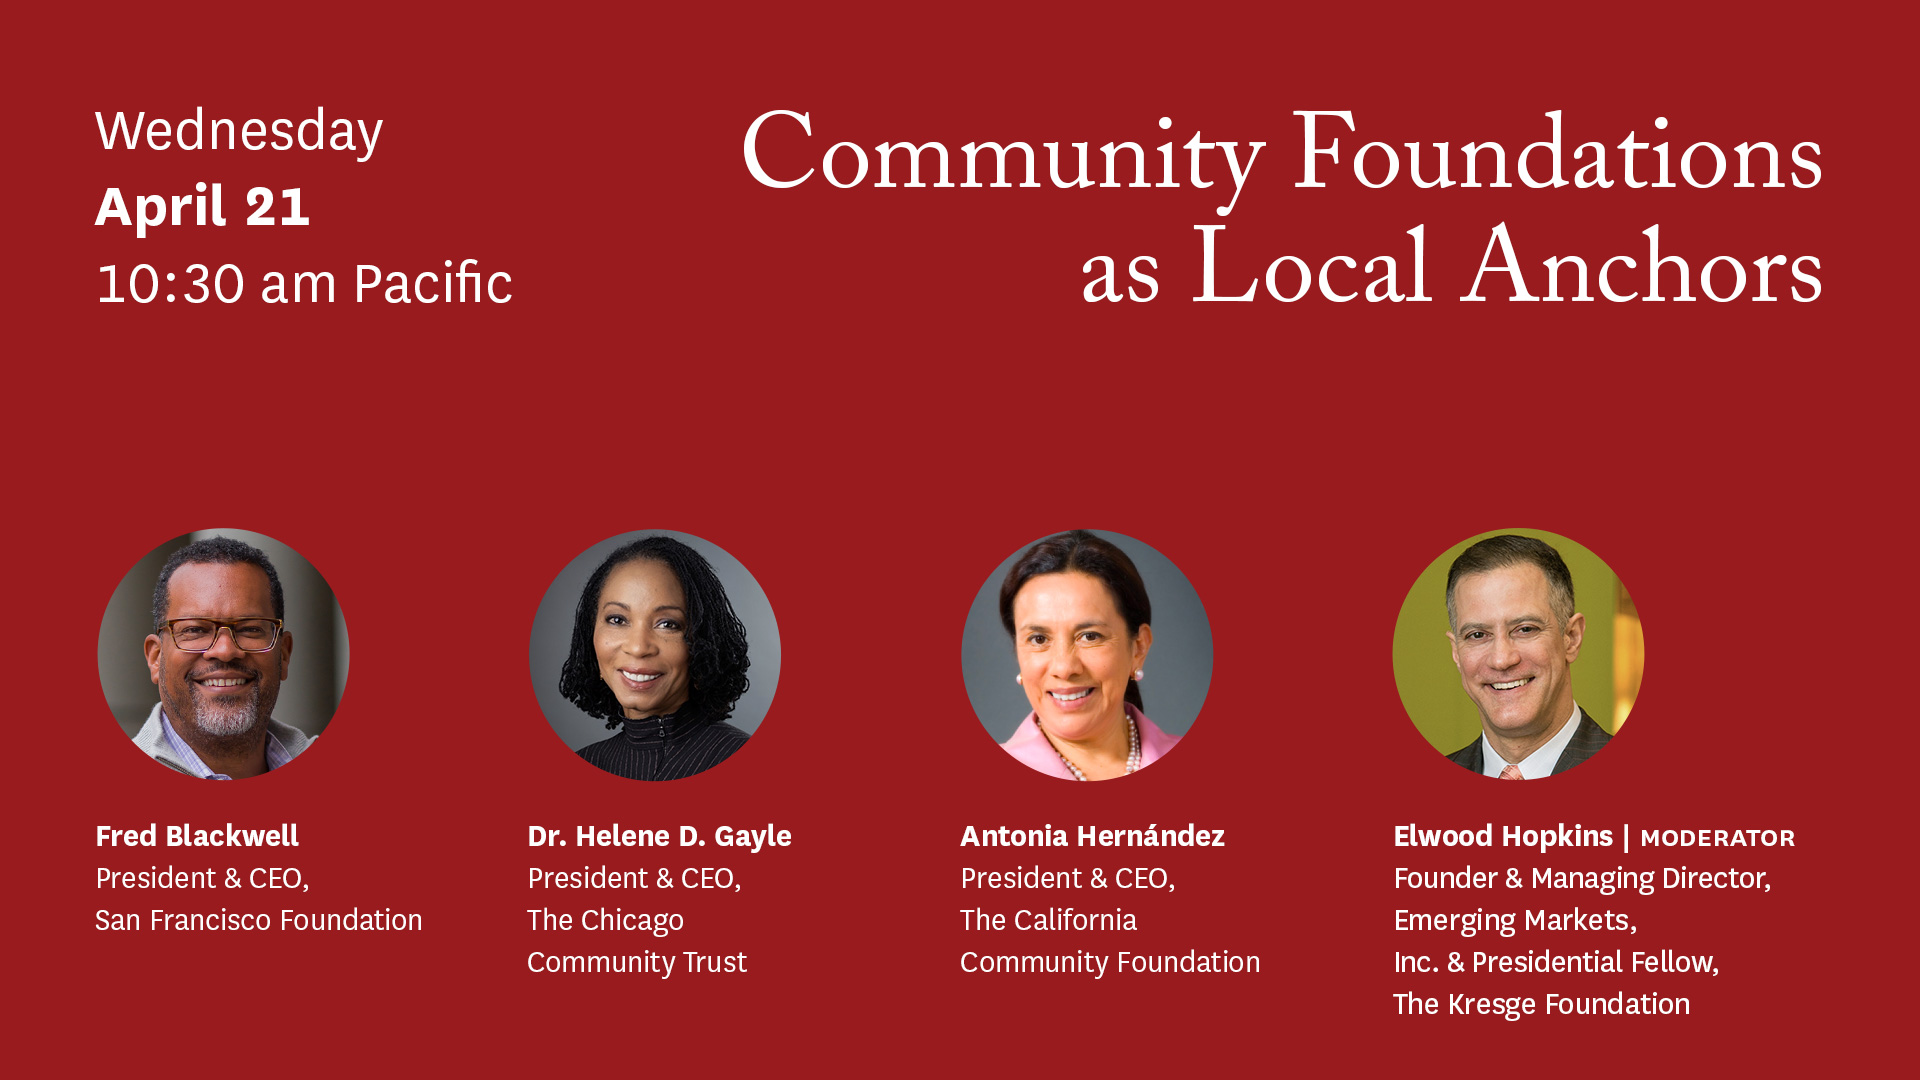 Community Foundations as Local Anchors